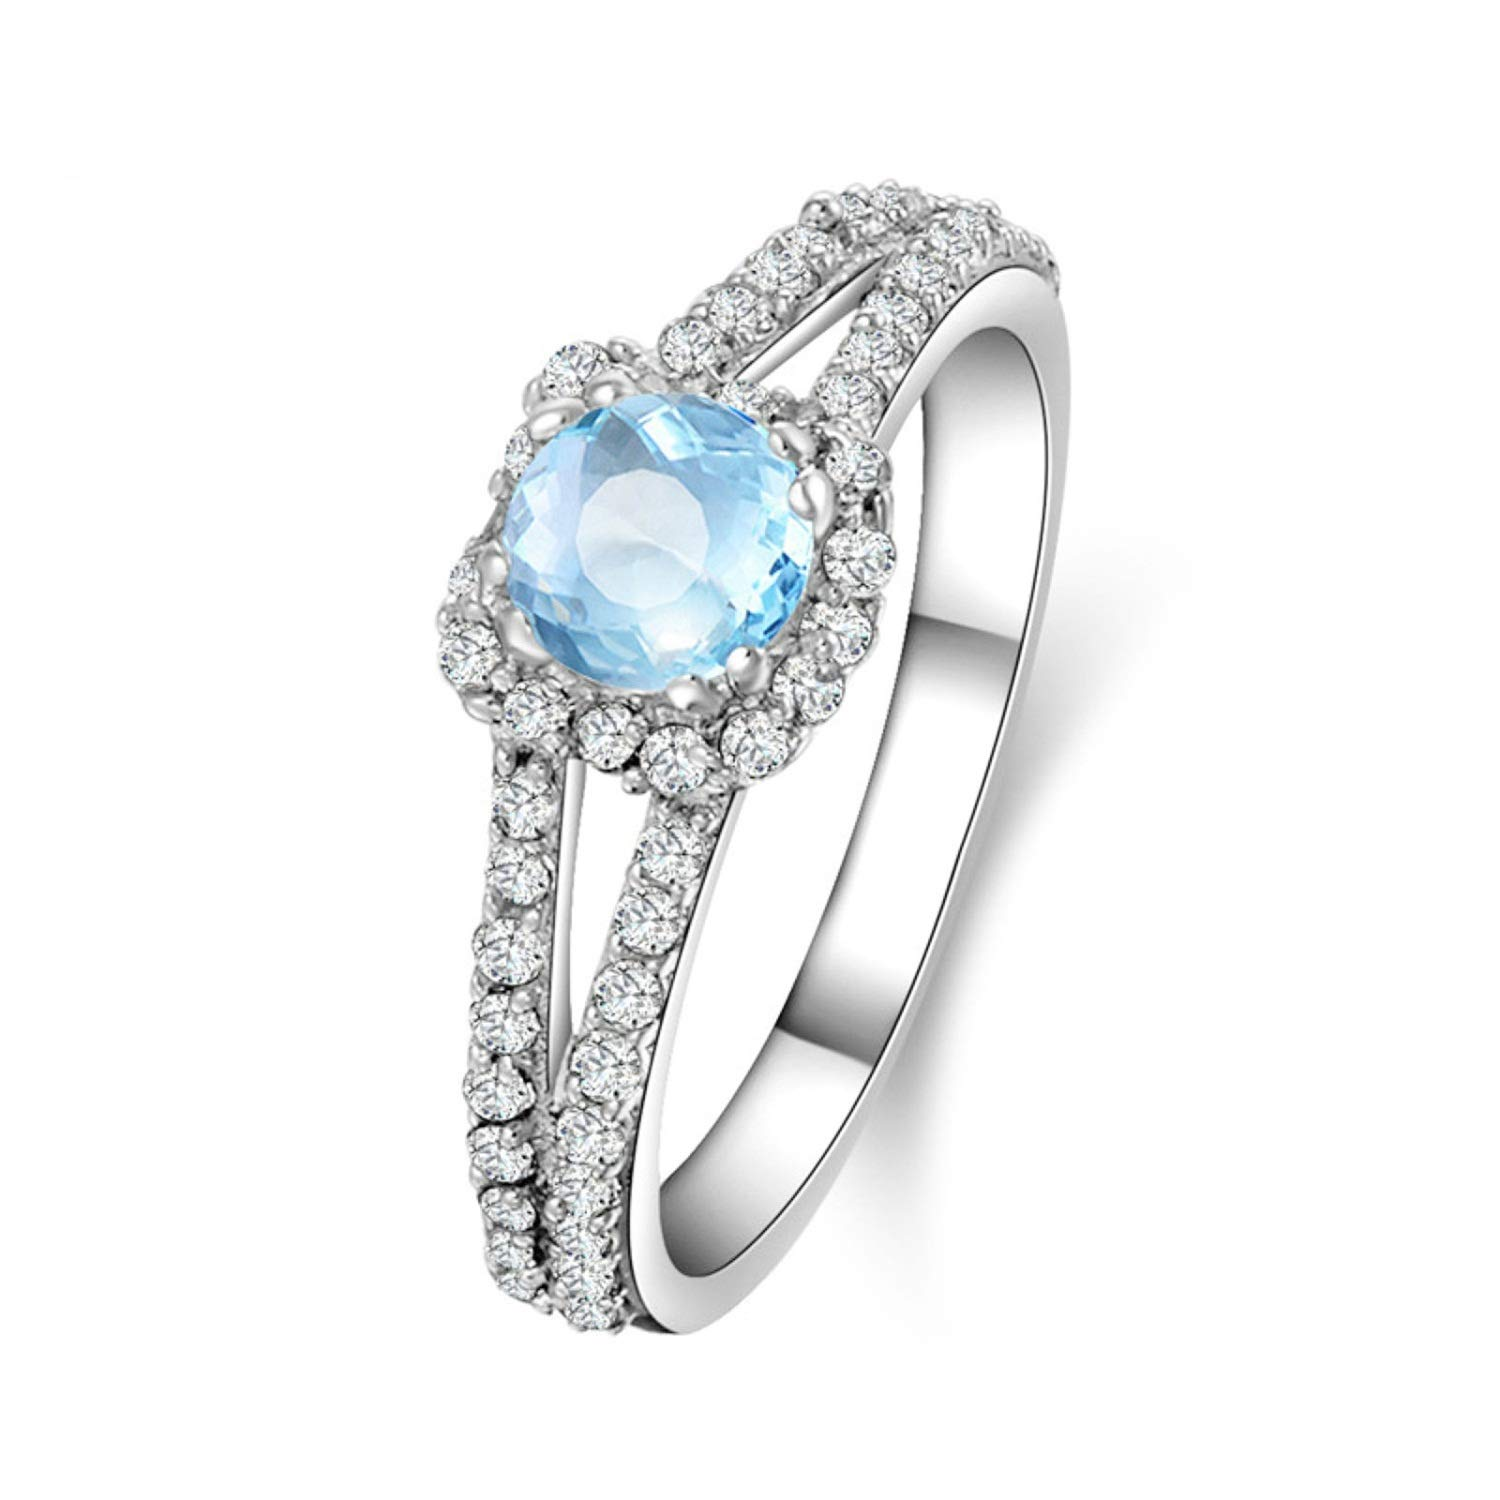 AMDXD Jewellery 925 Sterling Silver Anniversary Rings Women Blue Round Cut Topaz Round Rings